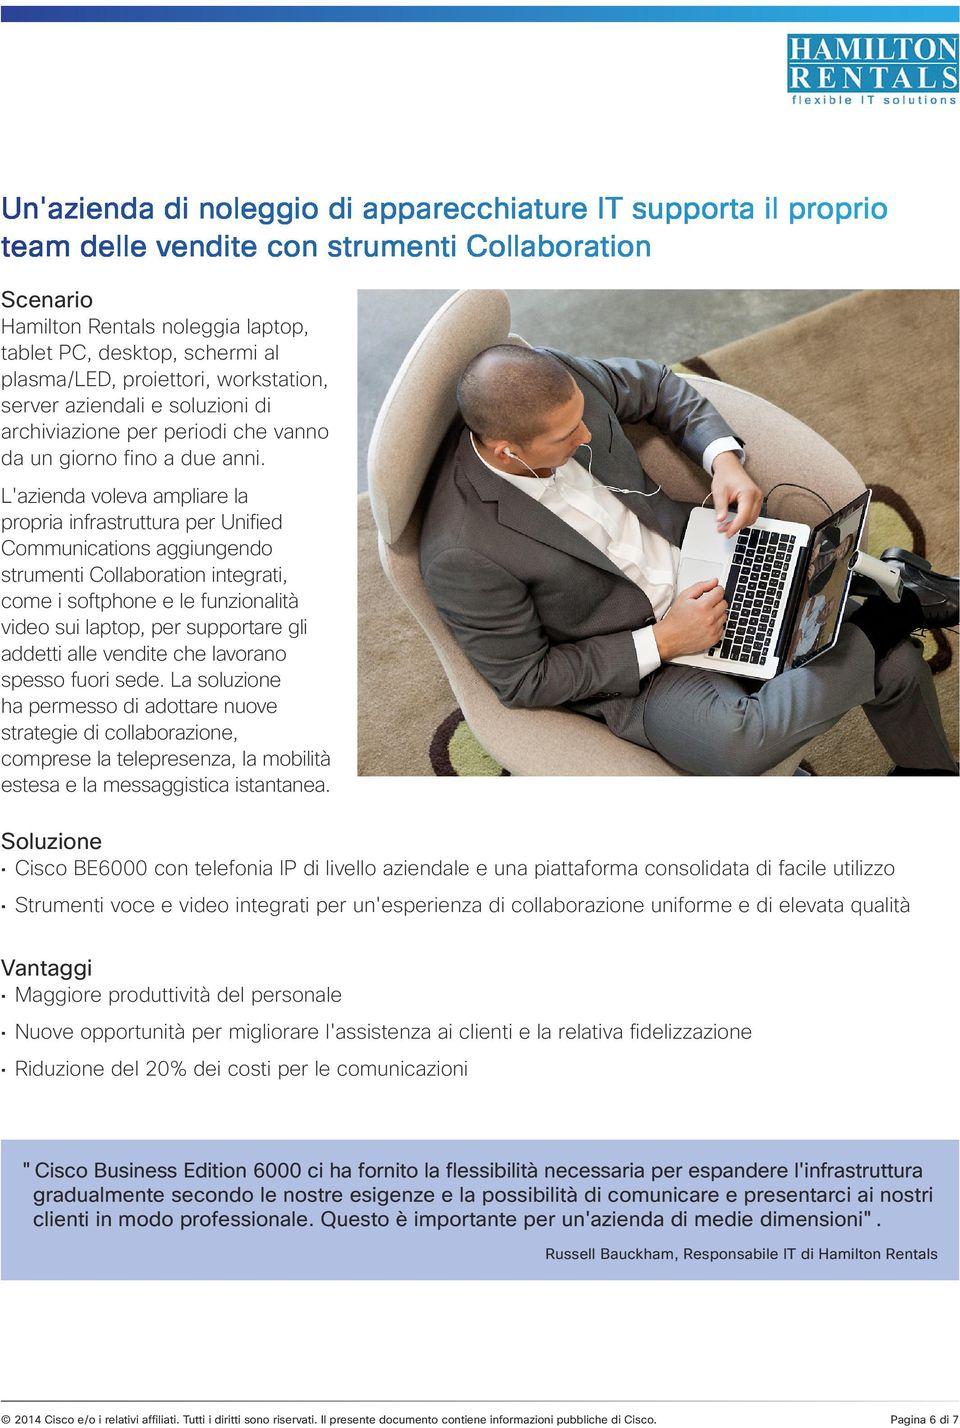 L'azienda voleva ampliare la propria infrastruttura per Unified Communications aggiungendo strumenti Collaboration integrati, come i softphone e le funzionalità video sui laptop, per supportare gli